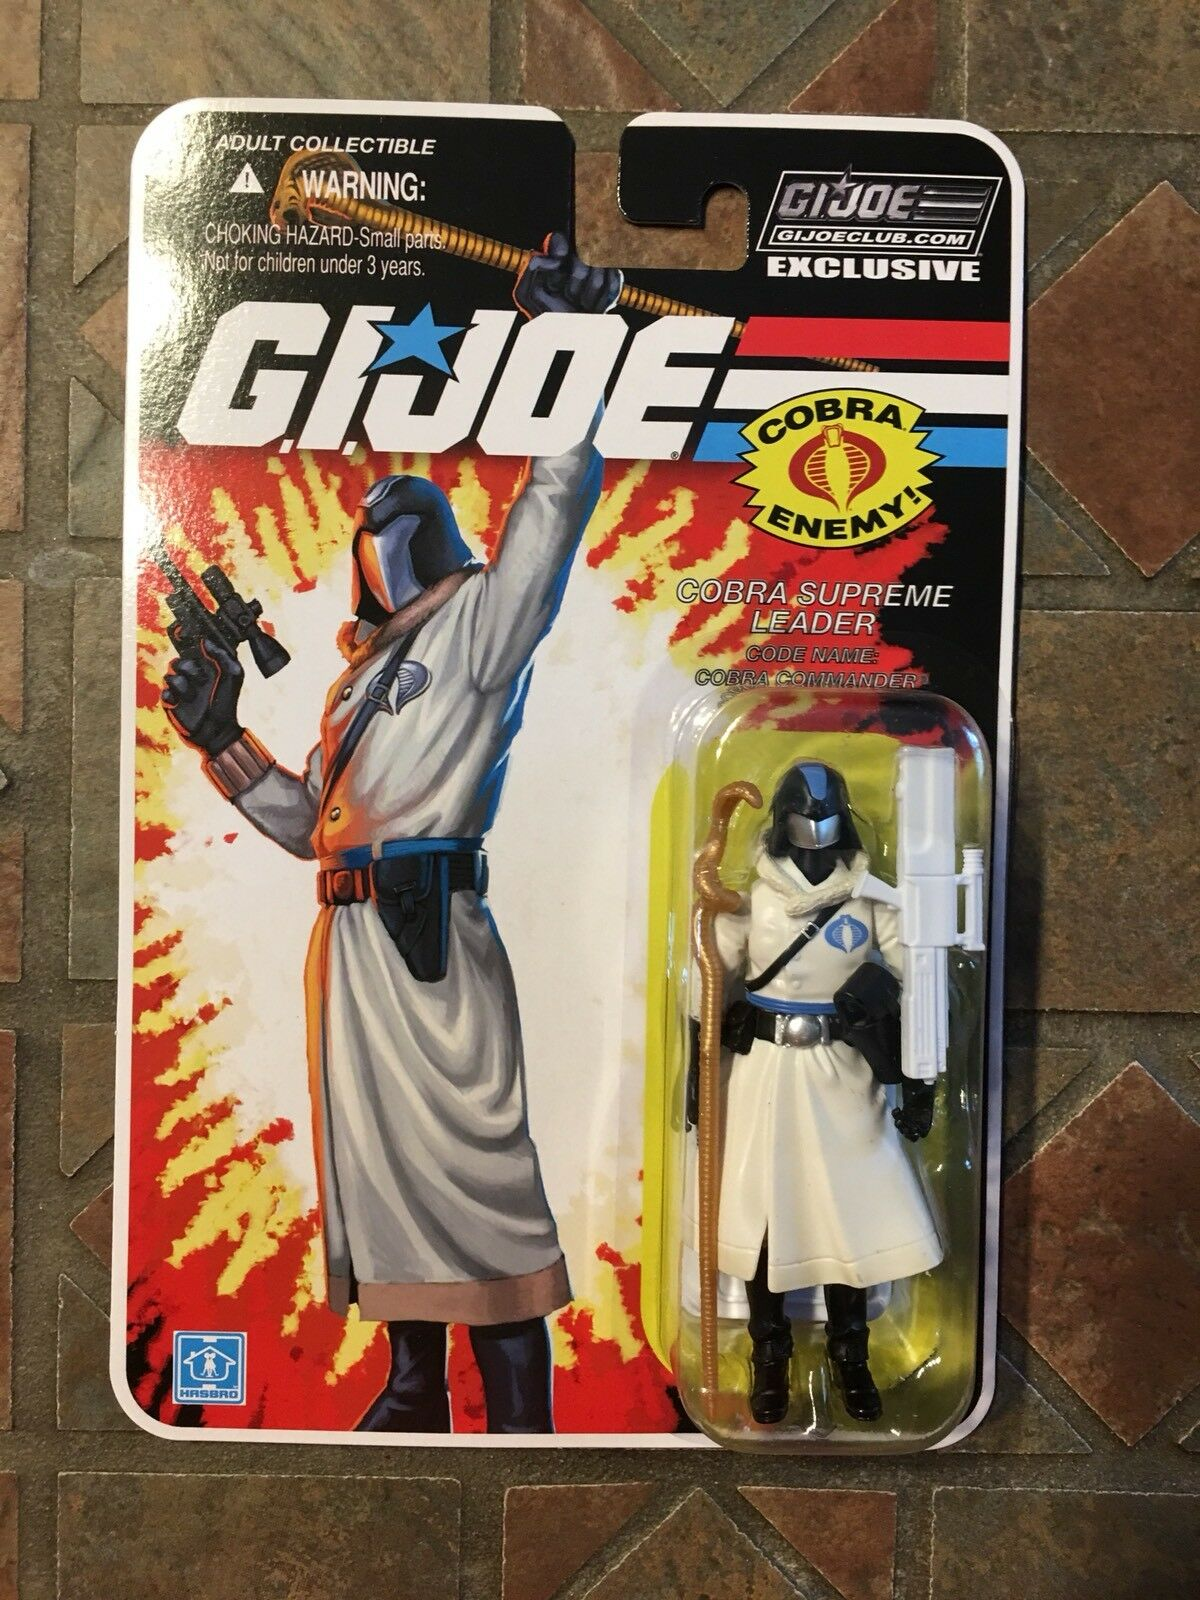 GI JOE ARTIC COBRA COMMANDER  FSS 7.0 Con Collectors Club Exclusive Figure 2018